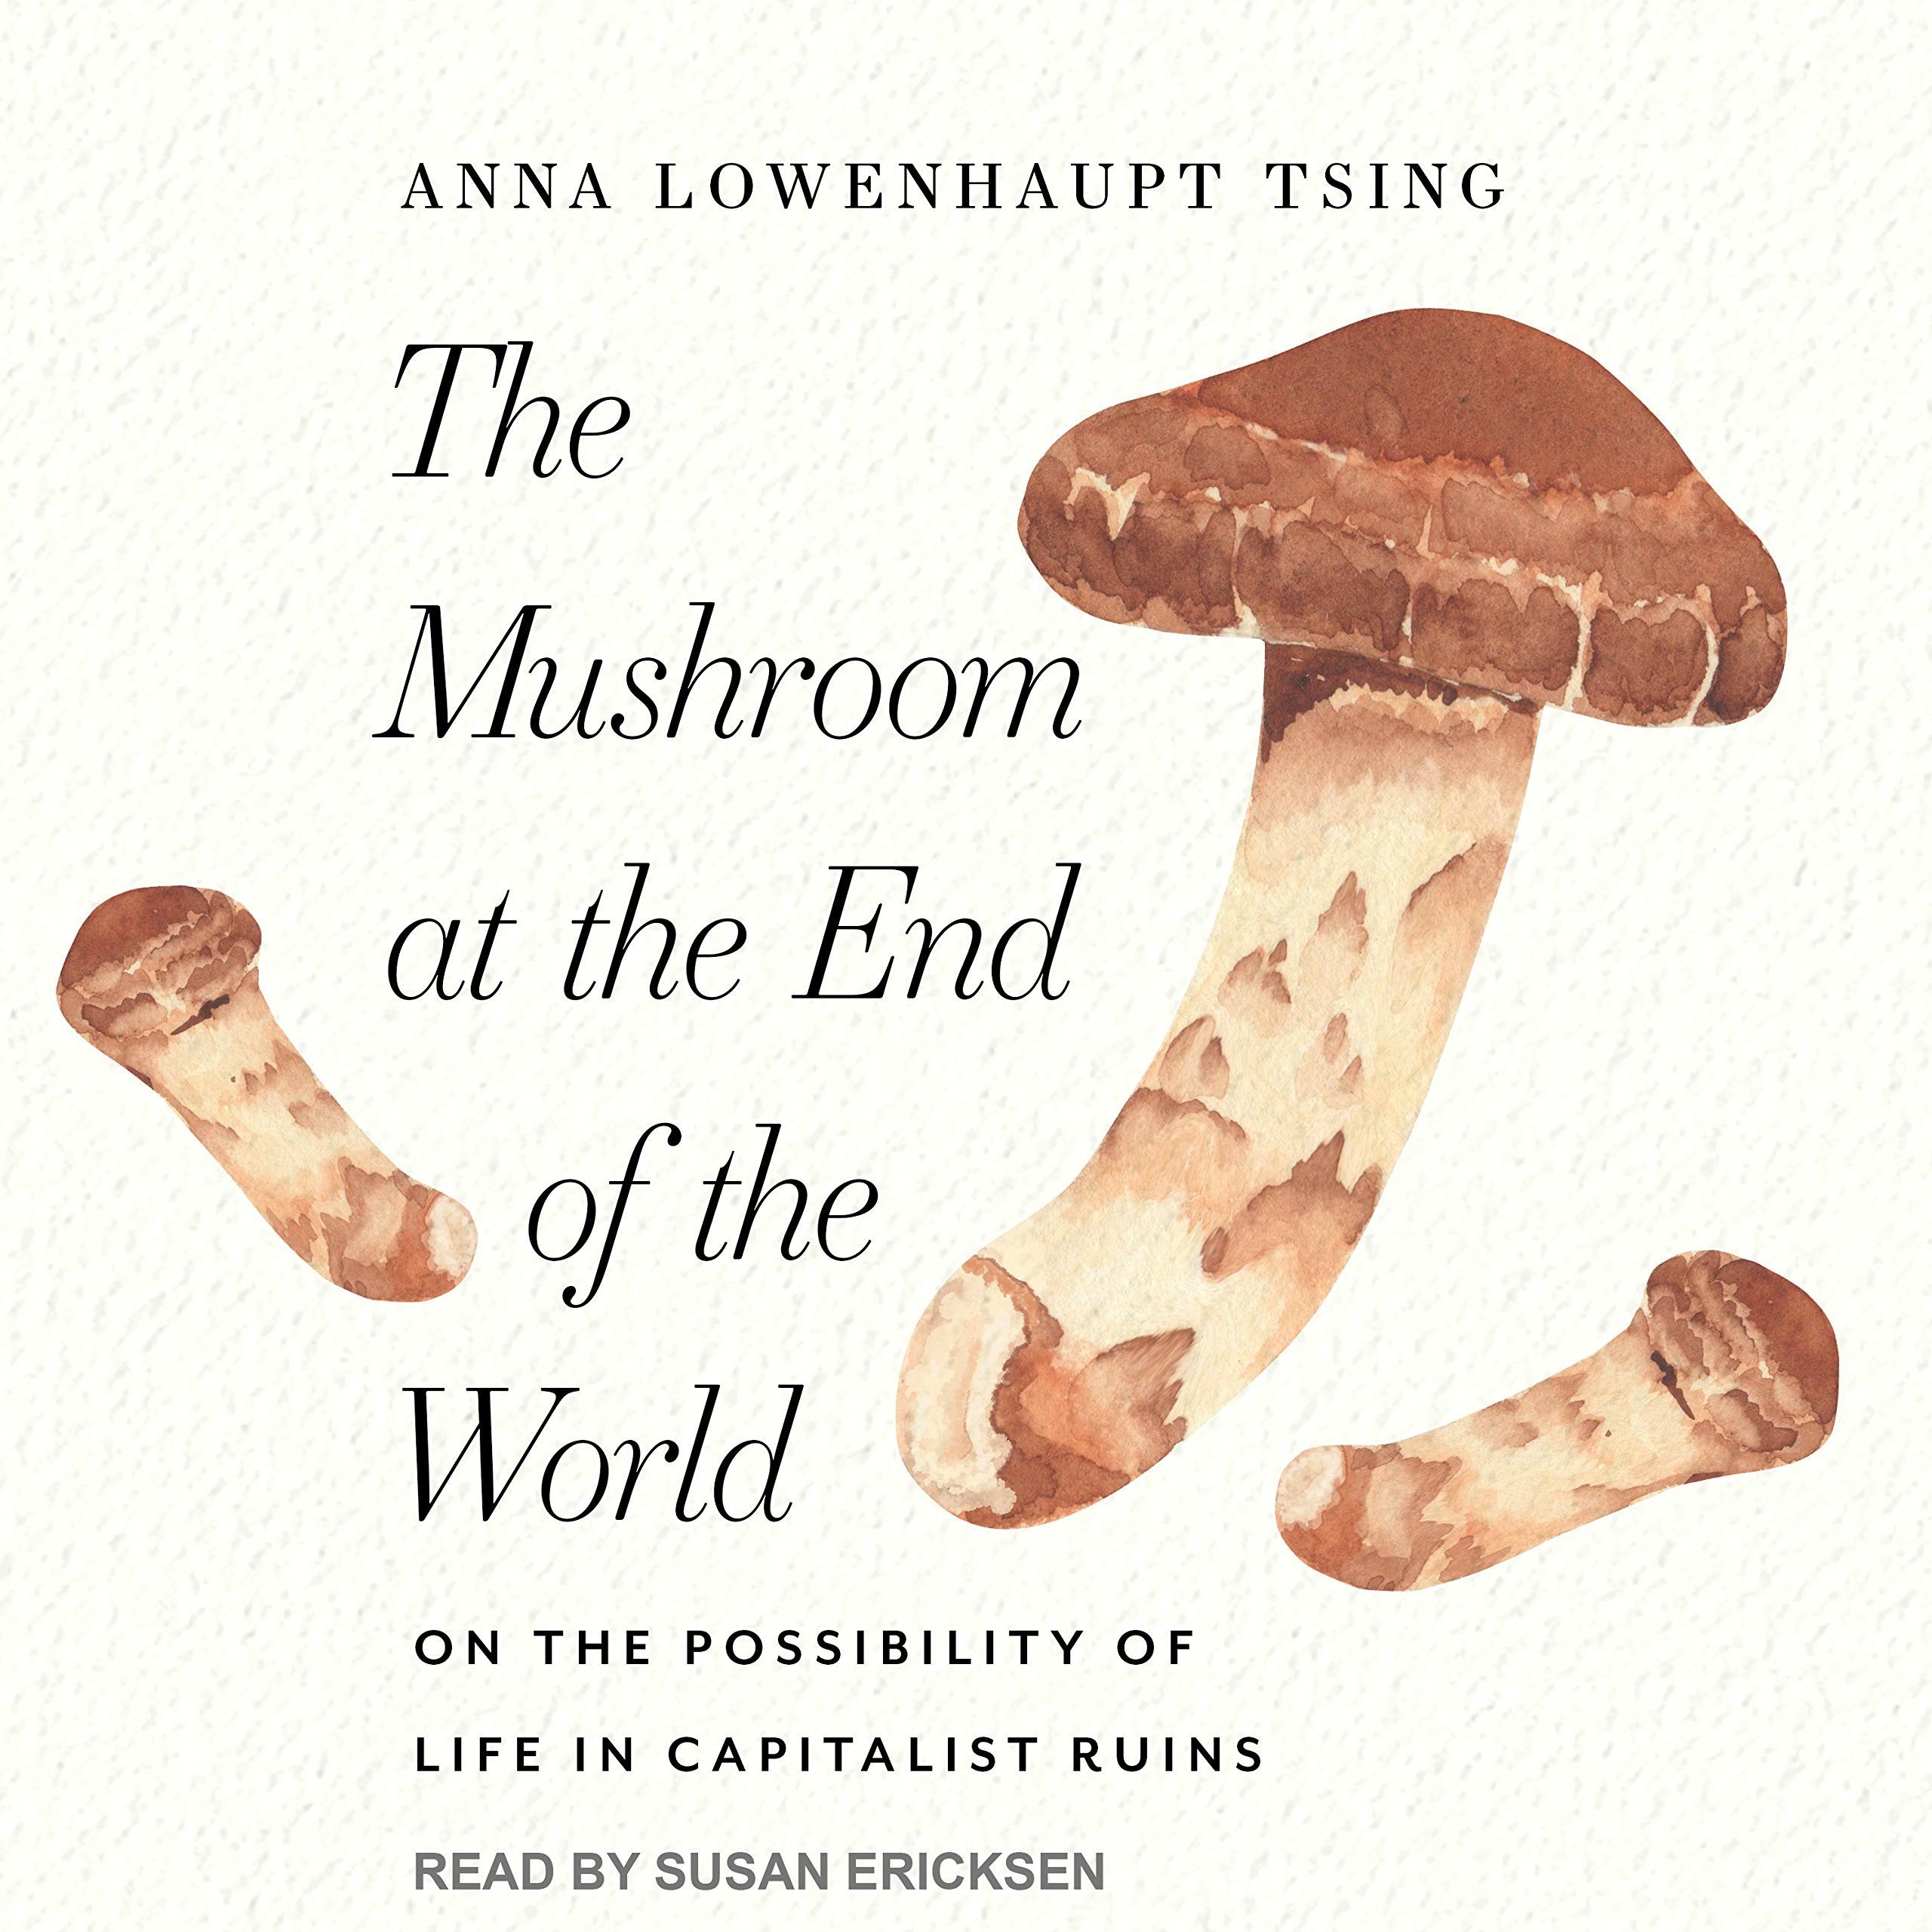 Pin by 𝕬𝖓𝖓𝖒𝖆𝖗𝖎𝖊 on Mushroom ᱫ | End of the world, Stuffed